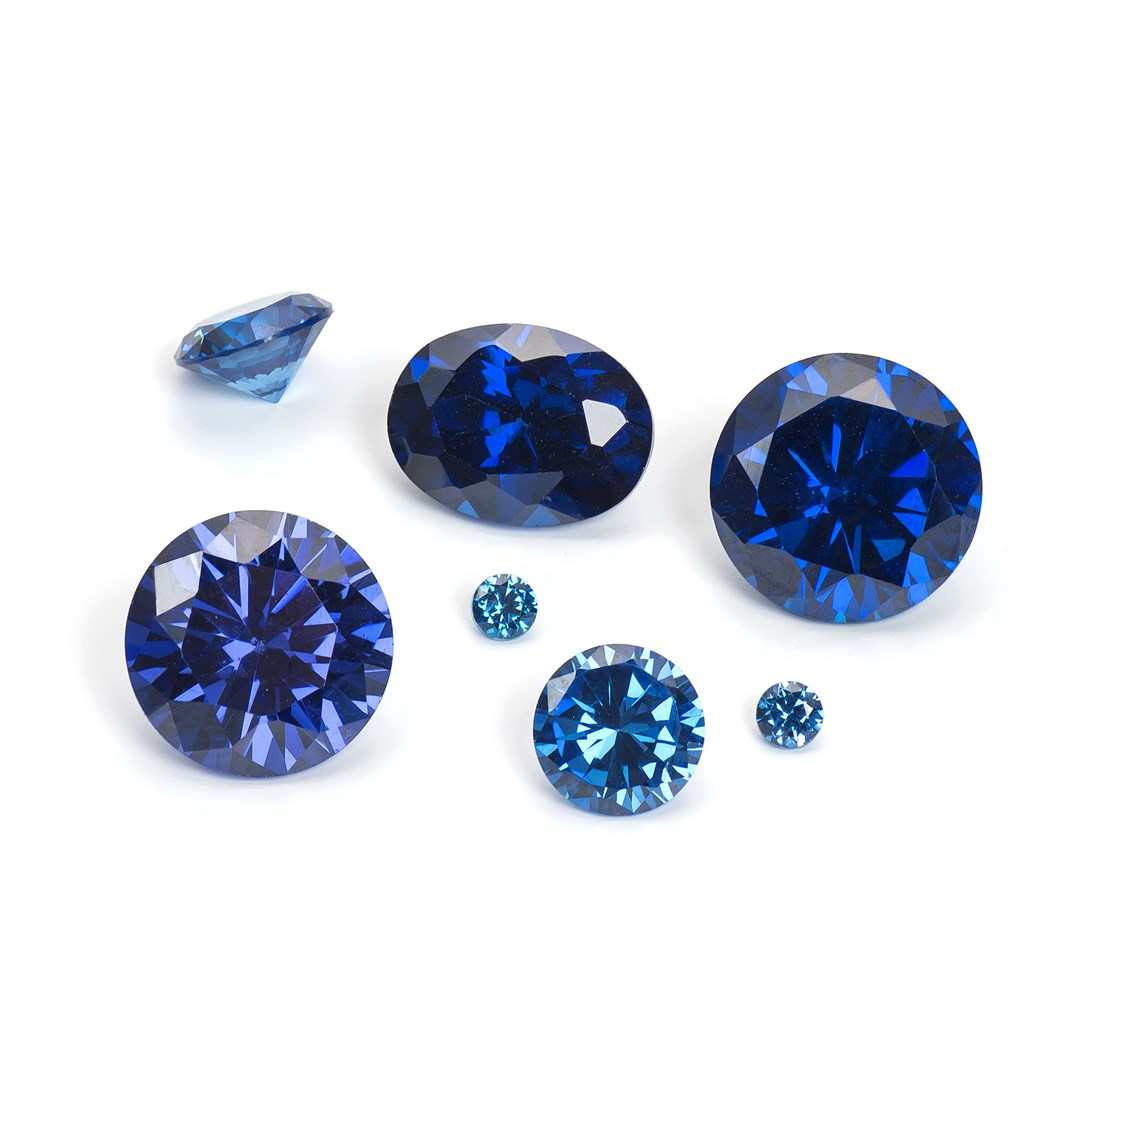 sapphire gemstone blue sku carat pear shape sri lanka lankan gemstones